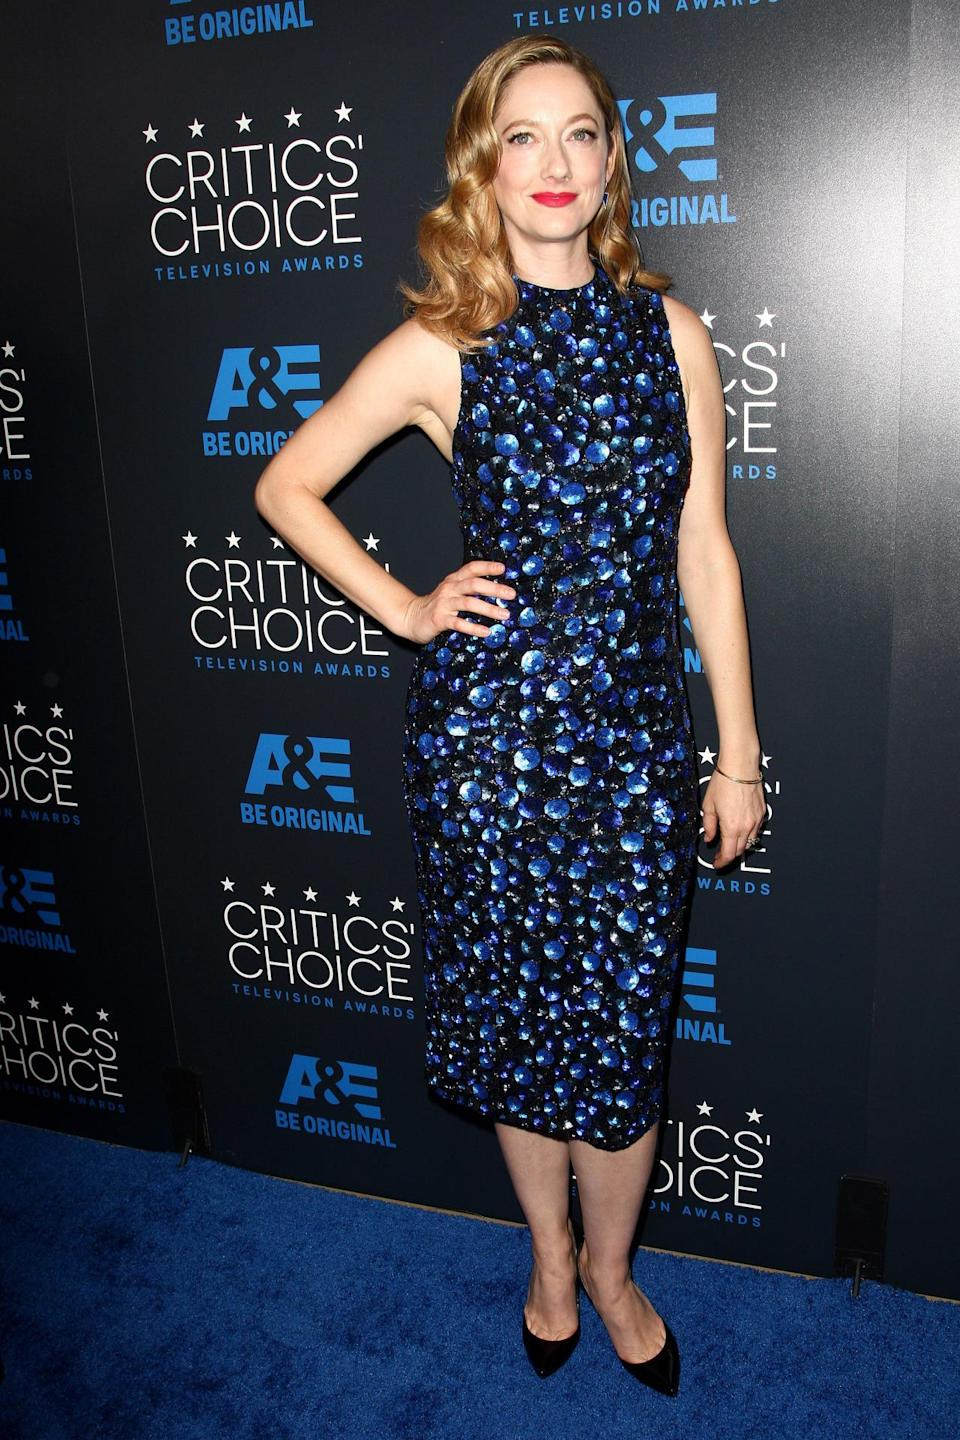 Being all dressed up in Alice + Olivia, didn't stop Judy Greer from eating pizza. During the Critics' Choice Awards, the actress ordered two pies to her table and shared with Chris Parnell and Aisha Tyler.